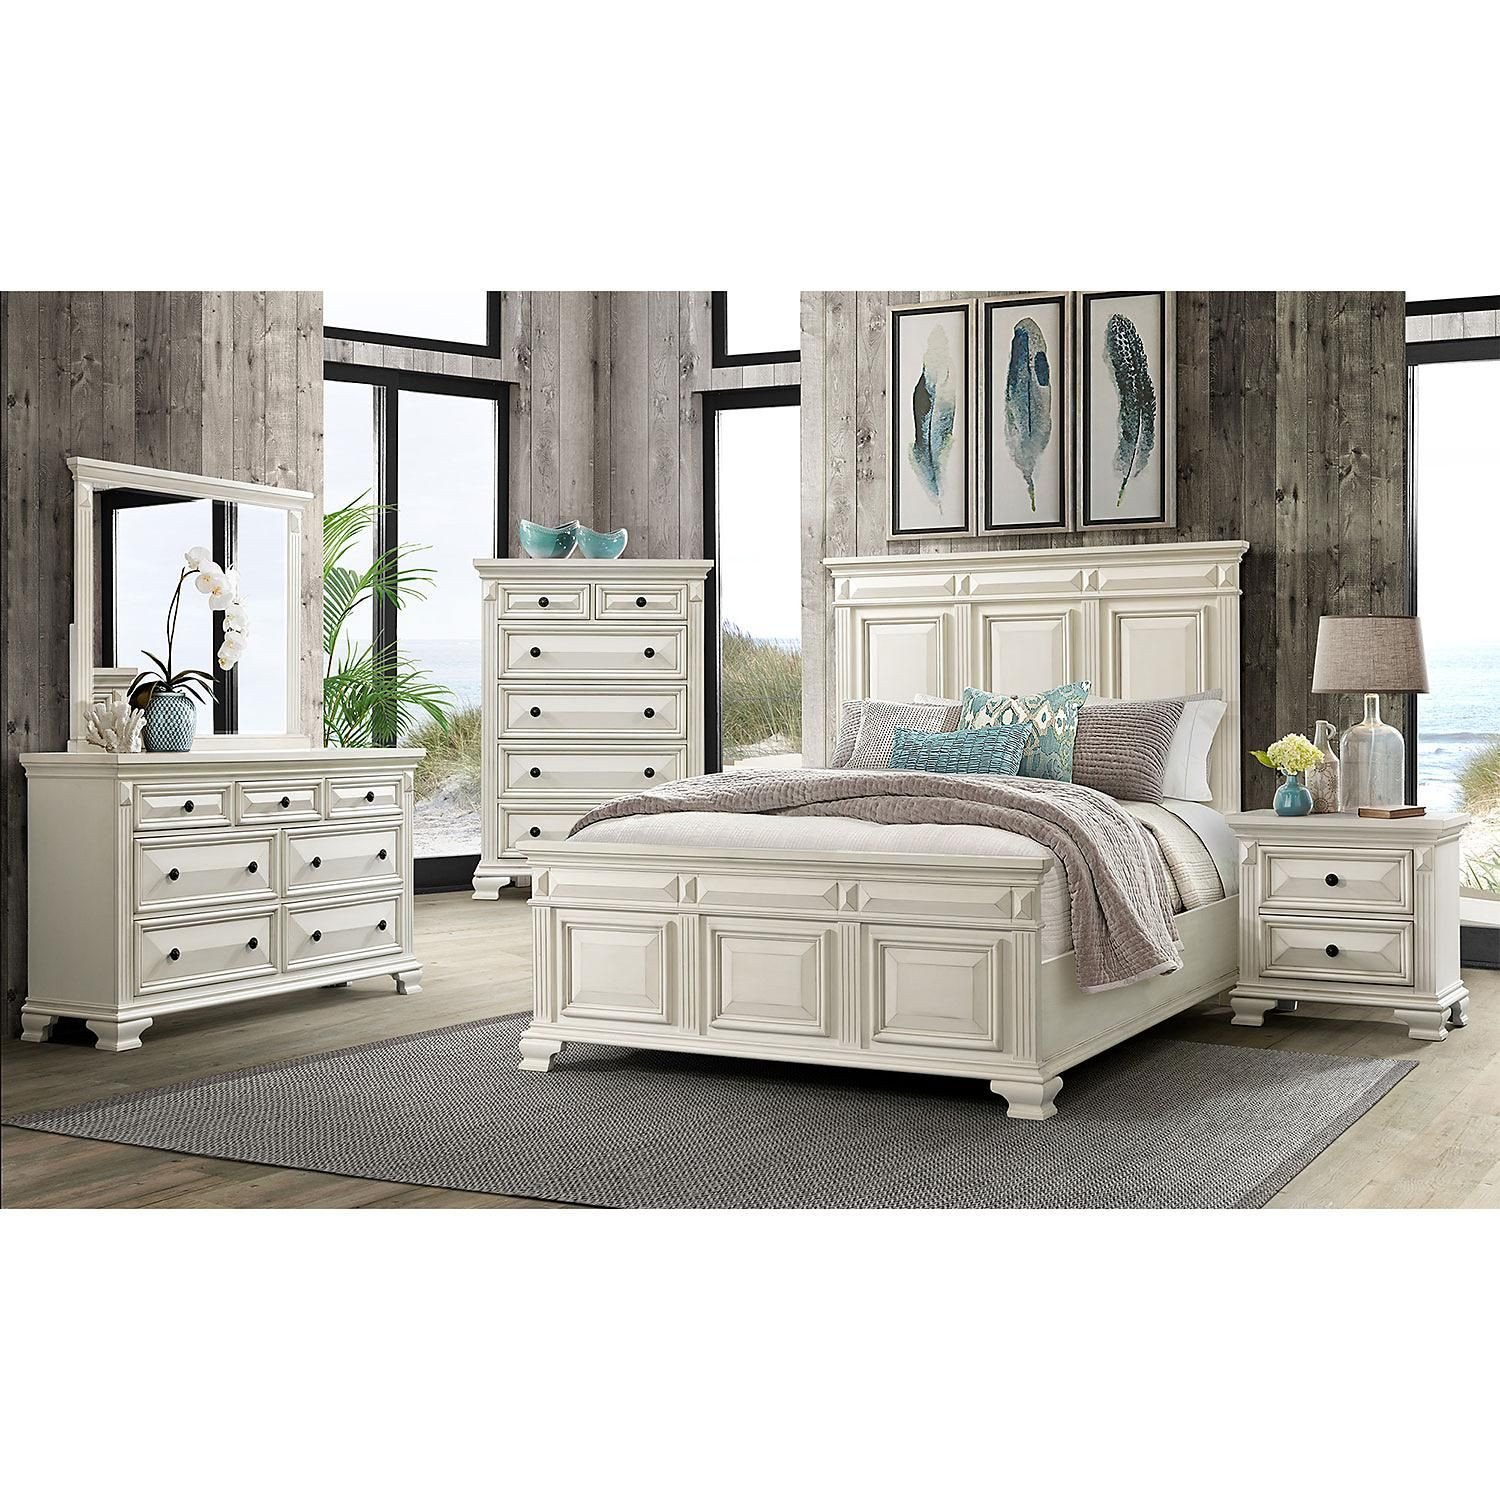 Rooms to Go Full Bedroom Set Fresh $1599 00 society Den Trent Panel 6 Piece King Bedroom Set